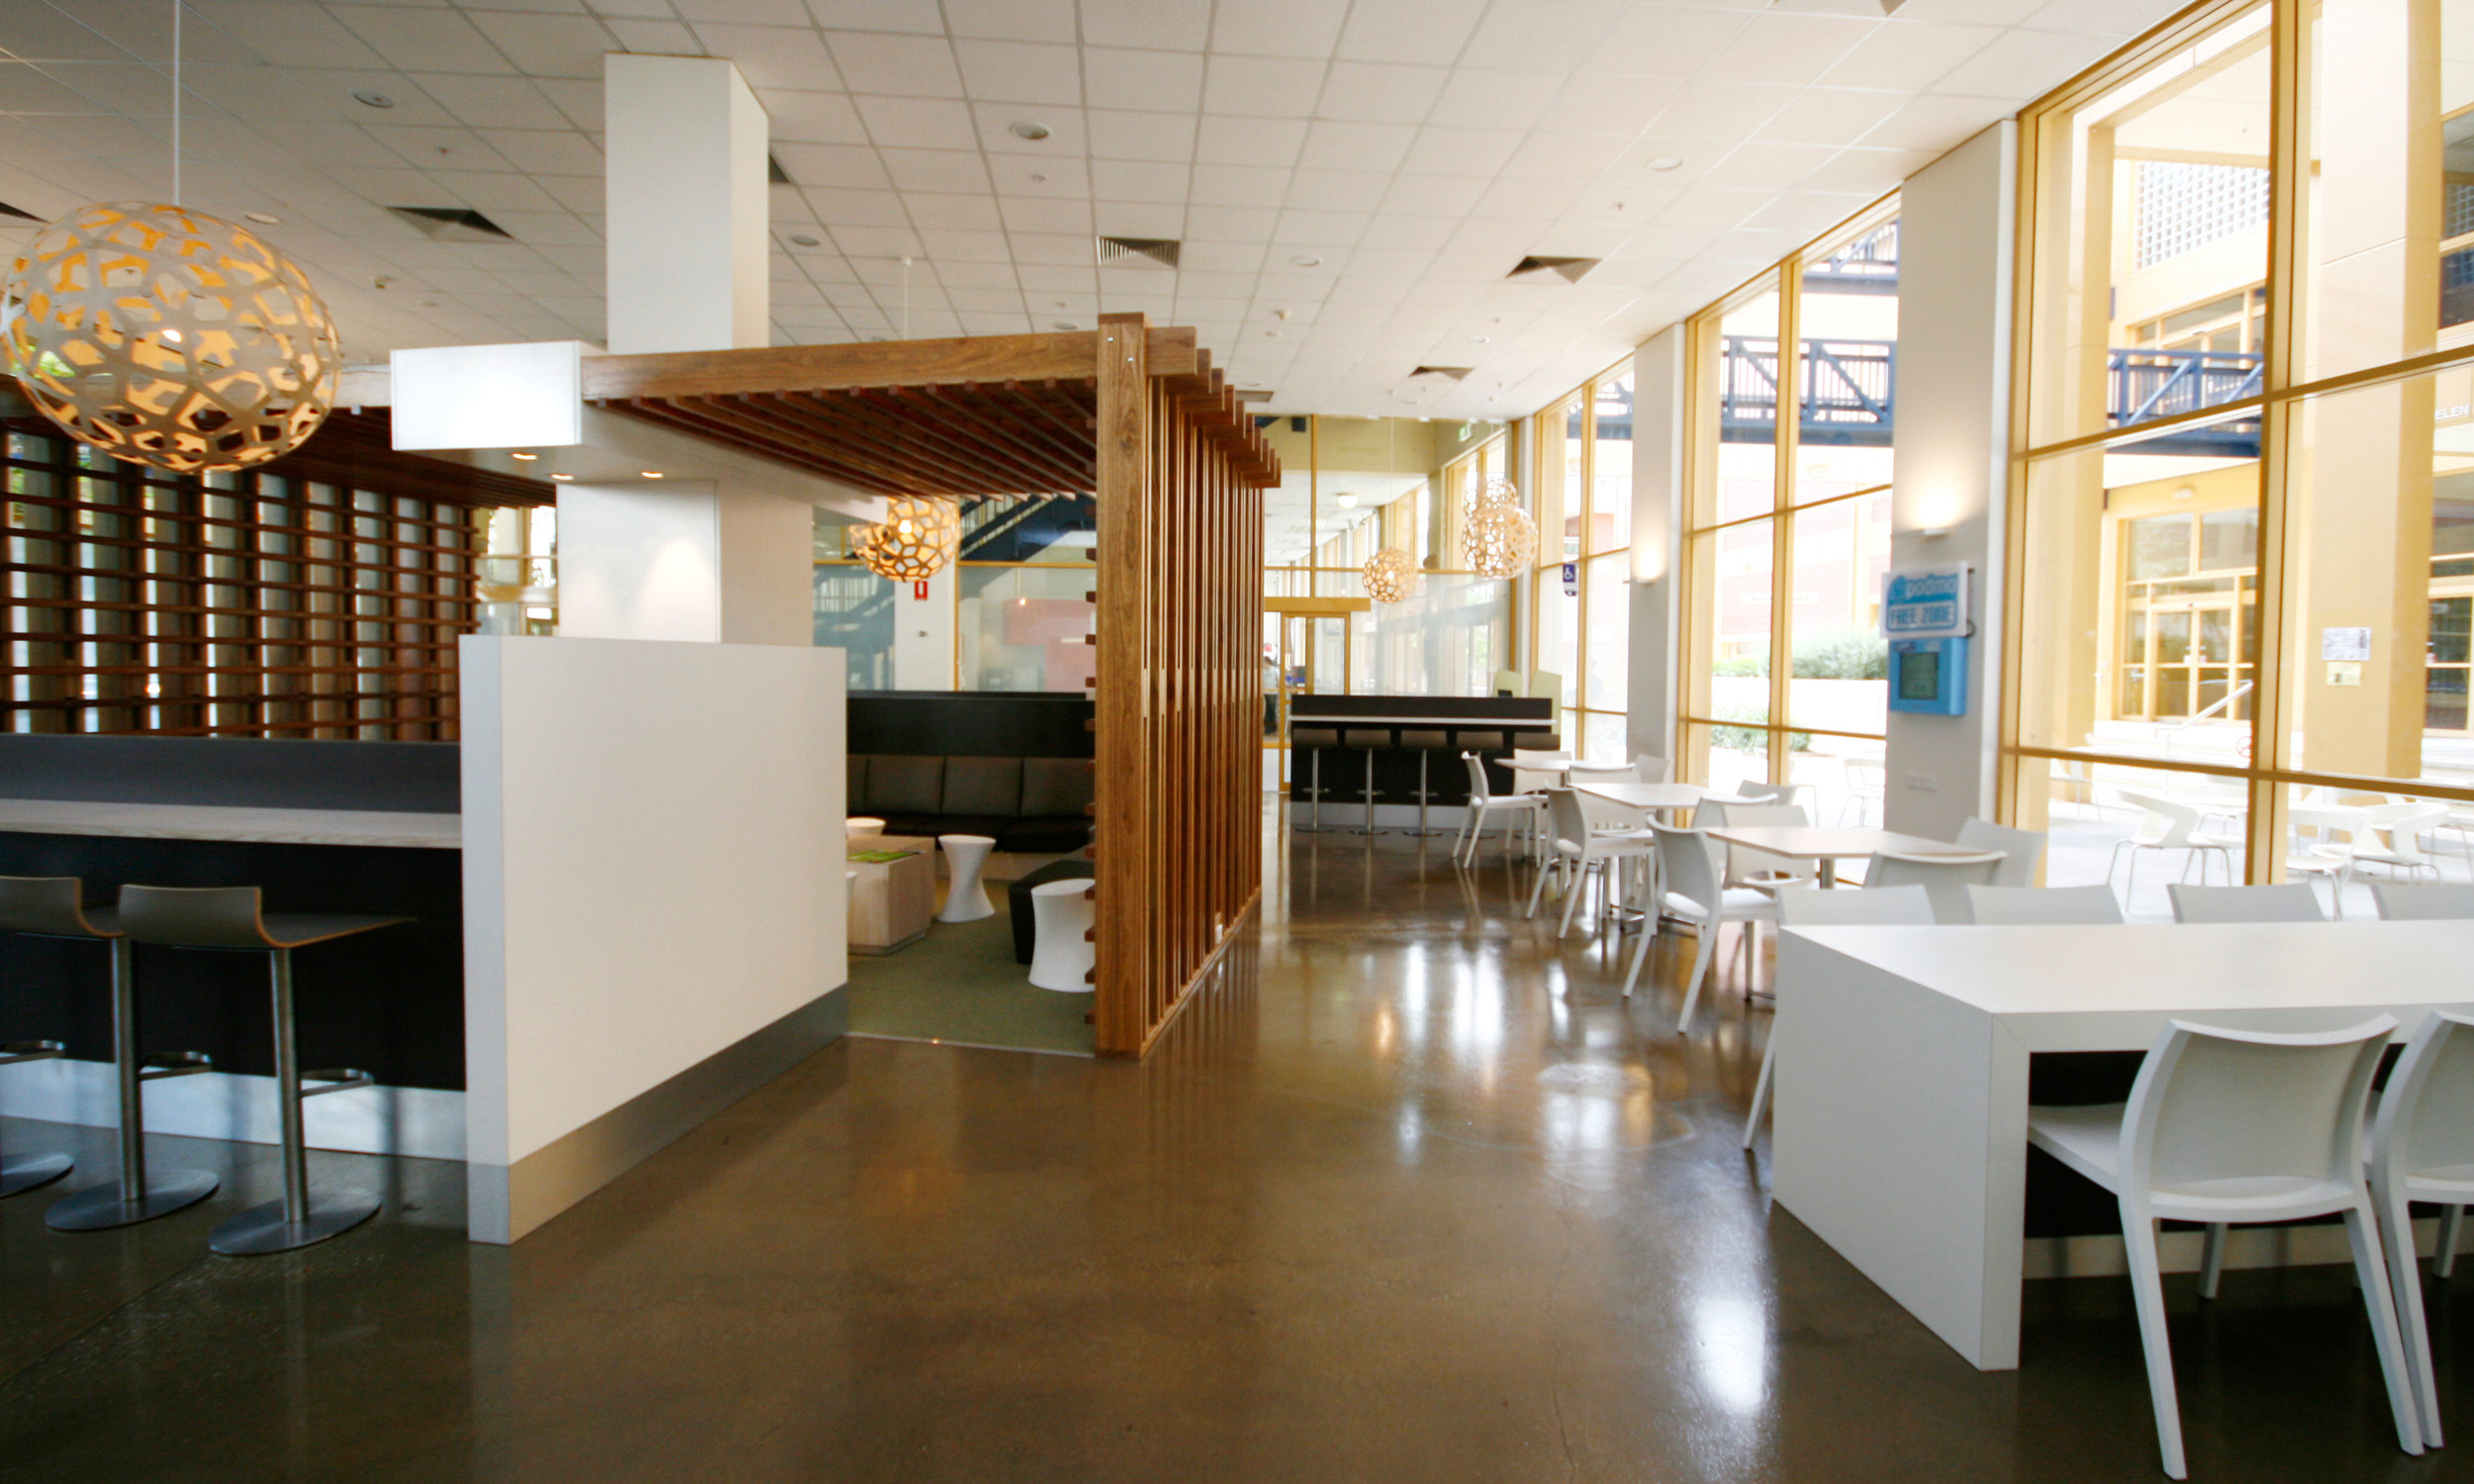 The Cafeteria at the City Campus creates flexible space for the ever-changing social requirements of university life